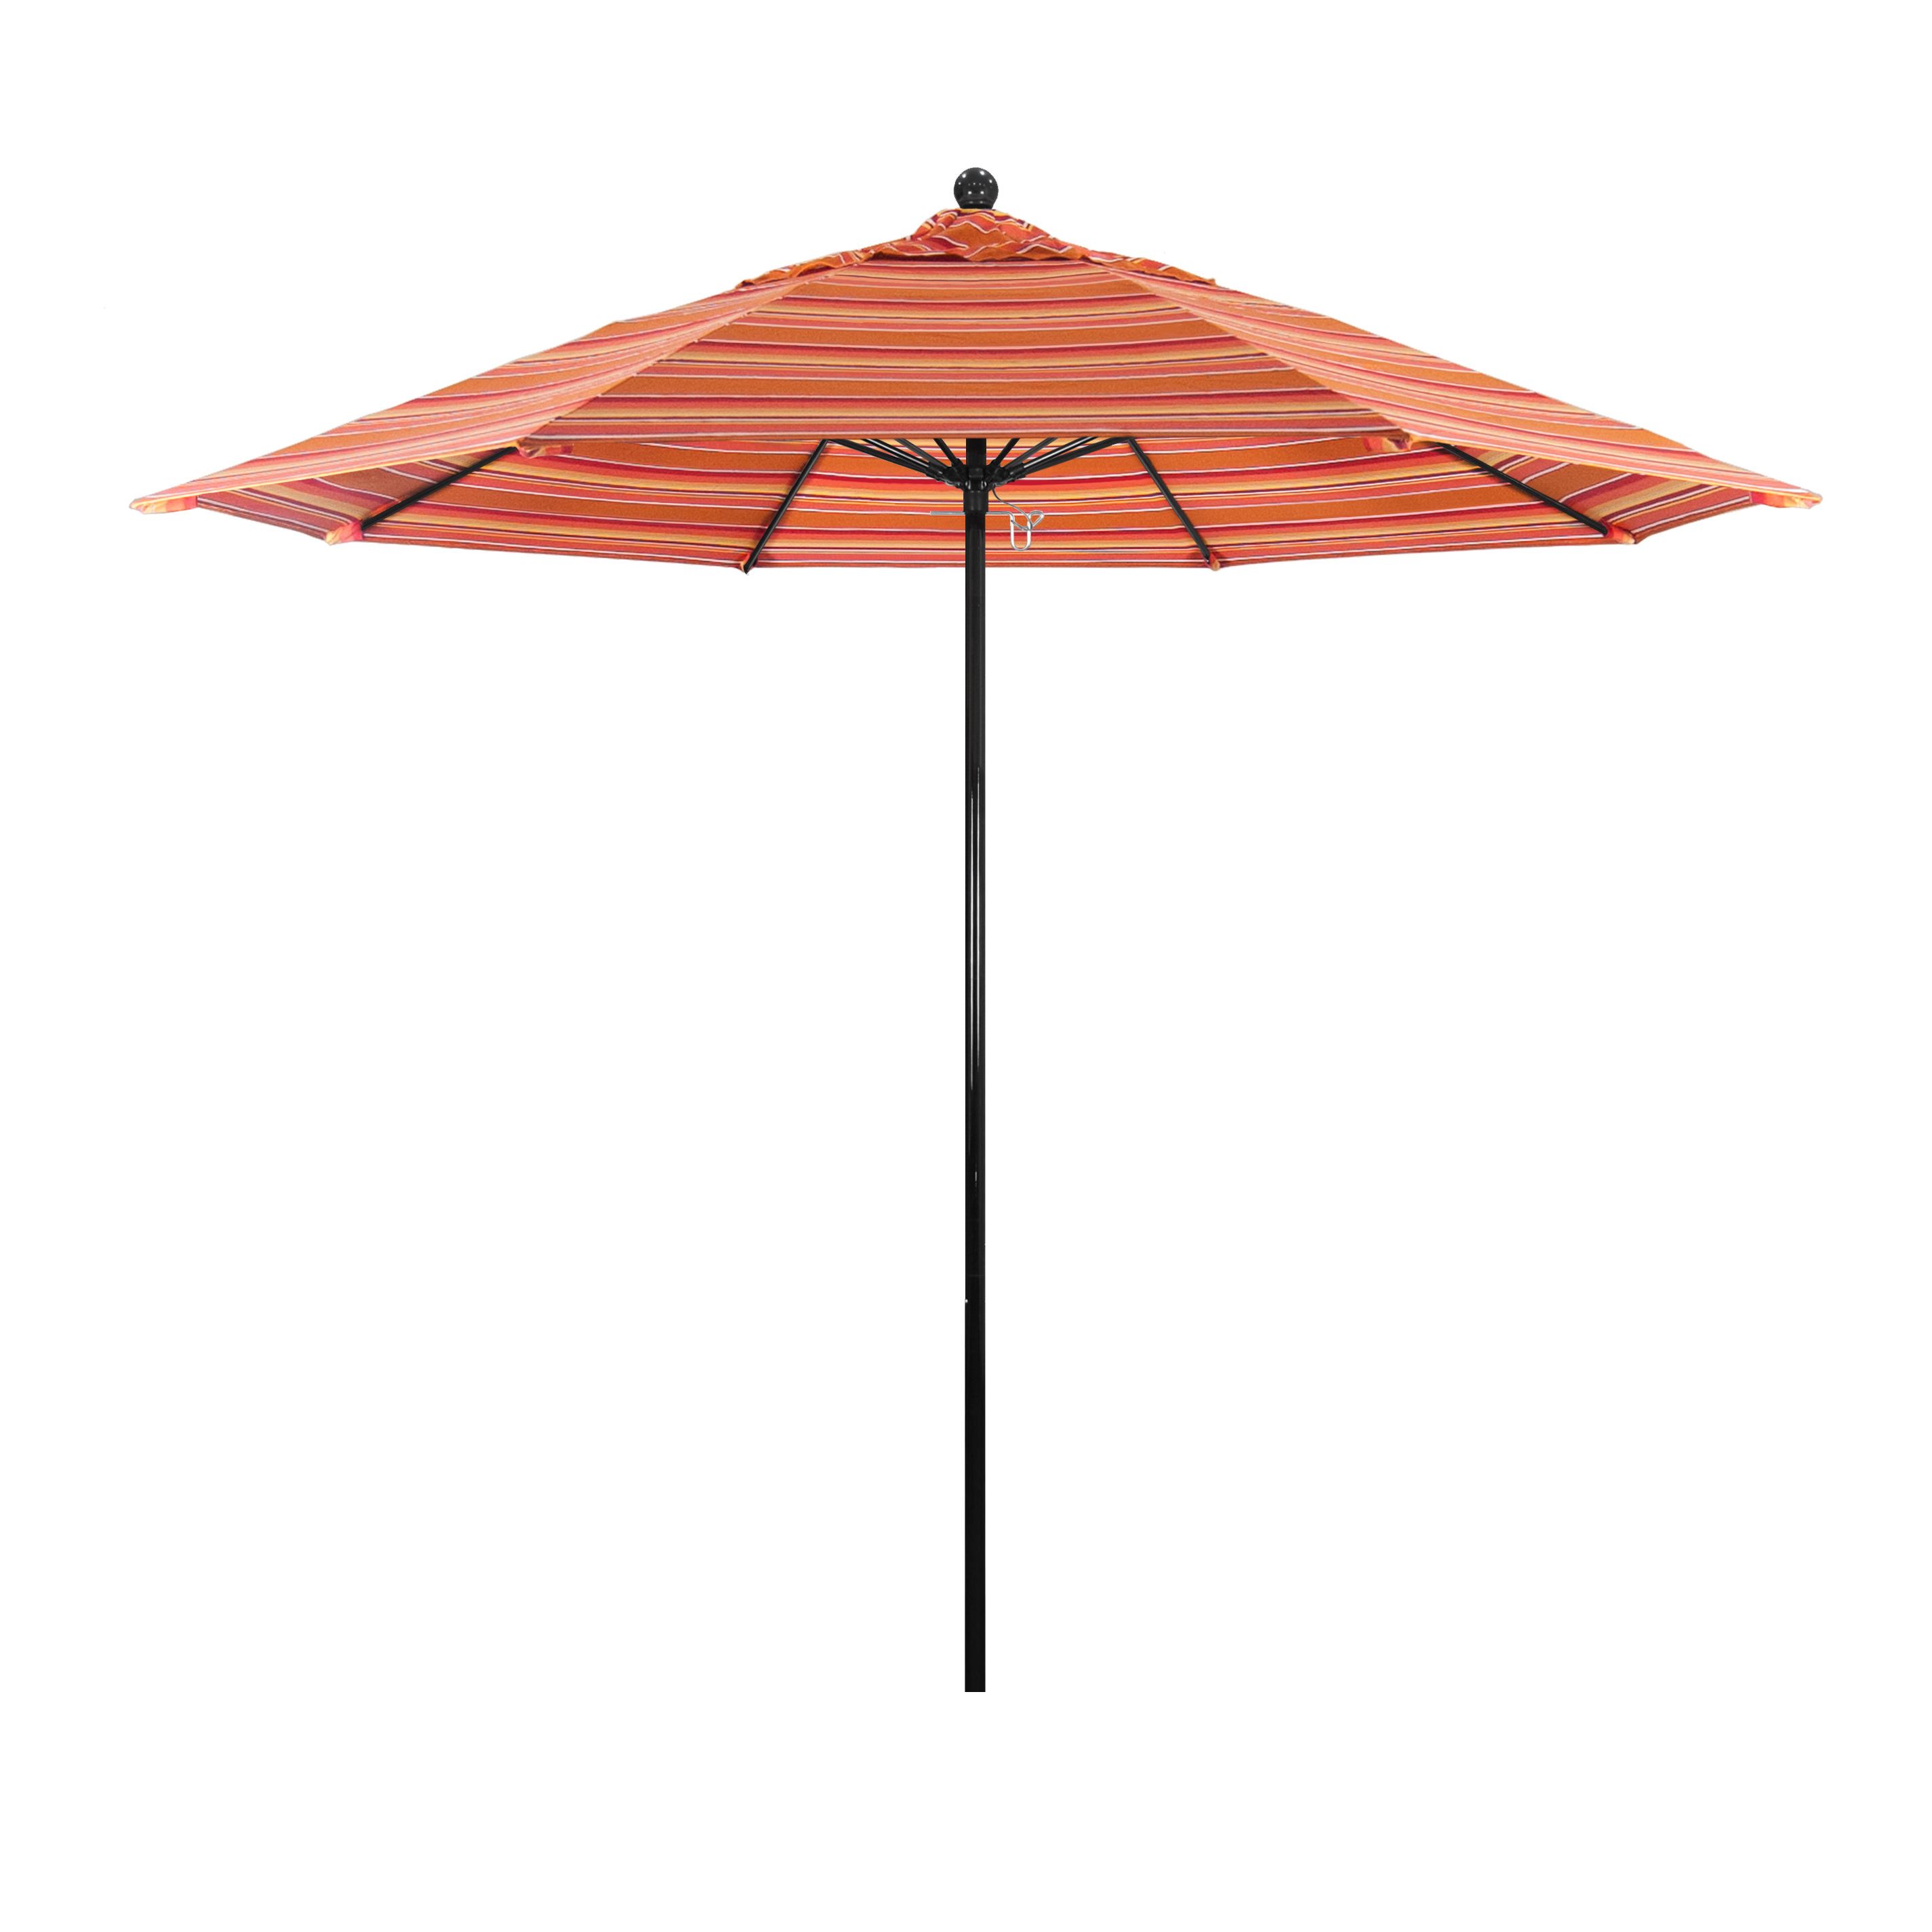 Oceanside Series 9' Market Sunbrella Umbrella Intended For Most Up To Date Crowland Market Sunbrella Umbrellas (Gallery 11 of 20)